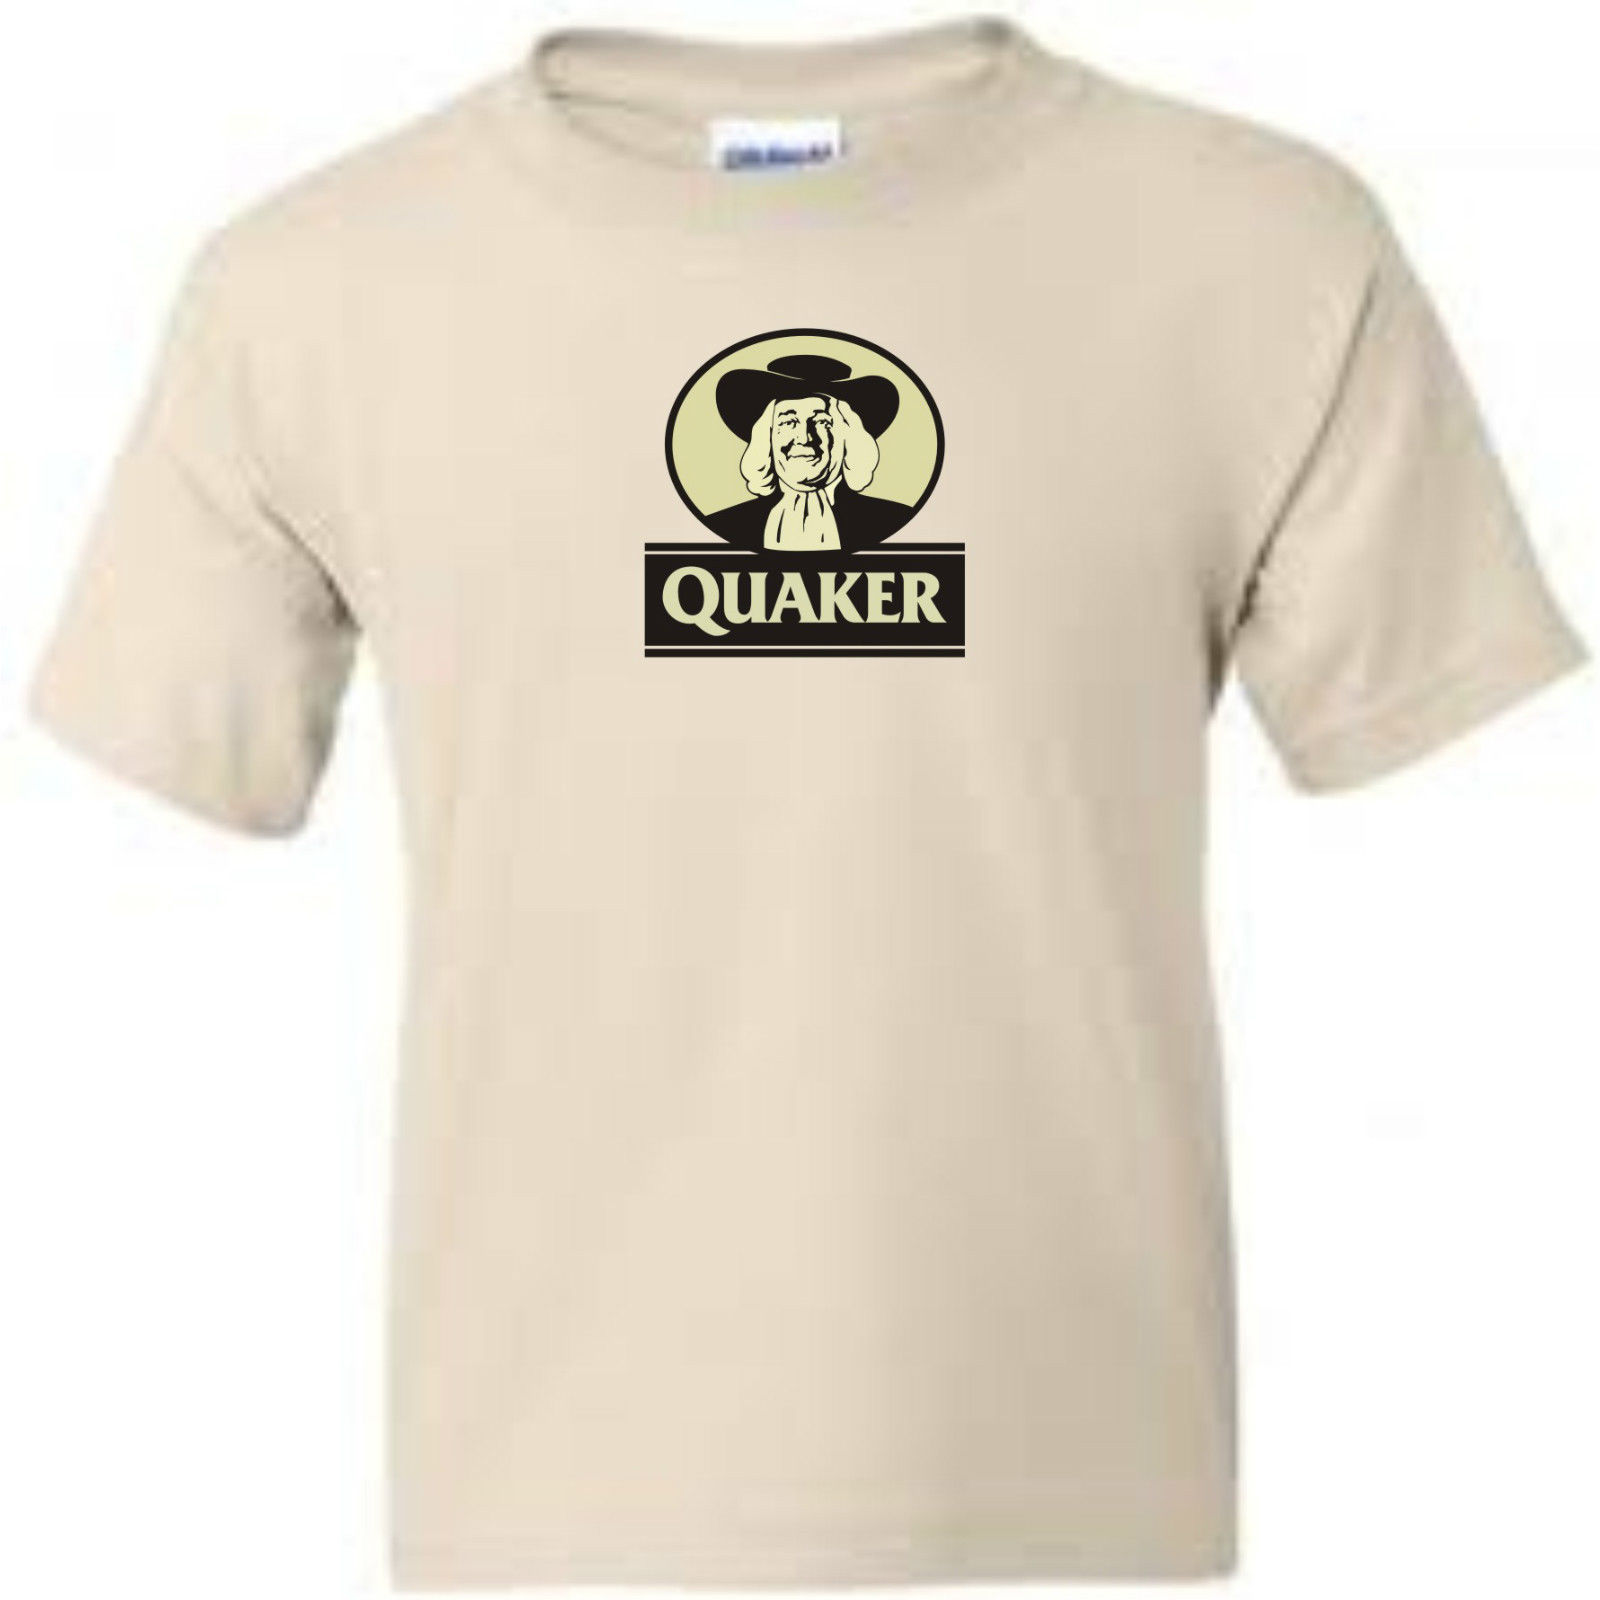 Quaker Oats T shirt retro vintage 80's brands 100% cotton graphic men's tee